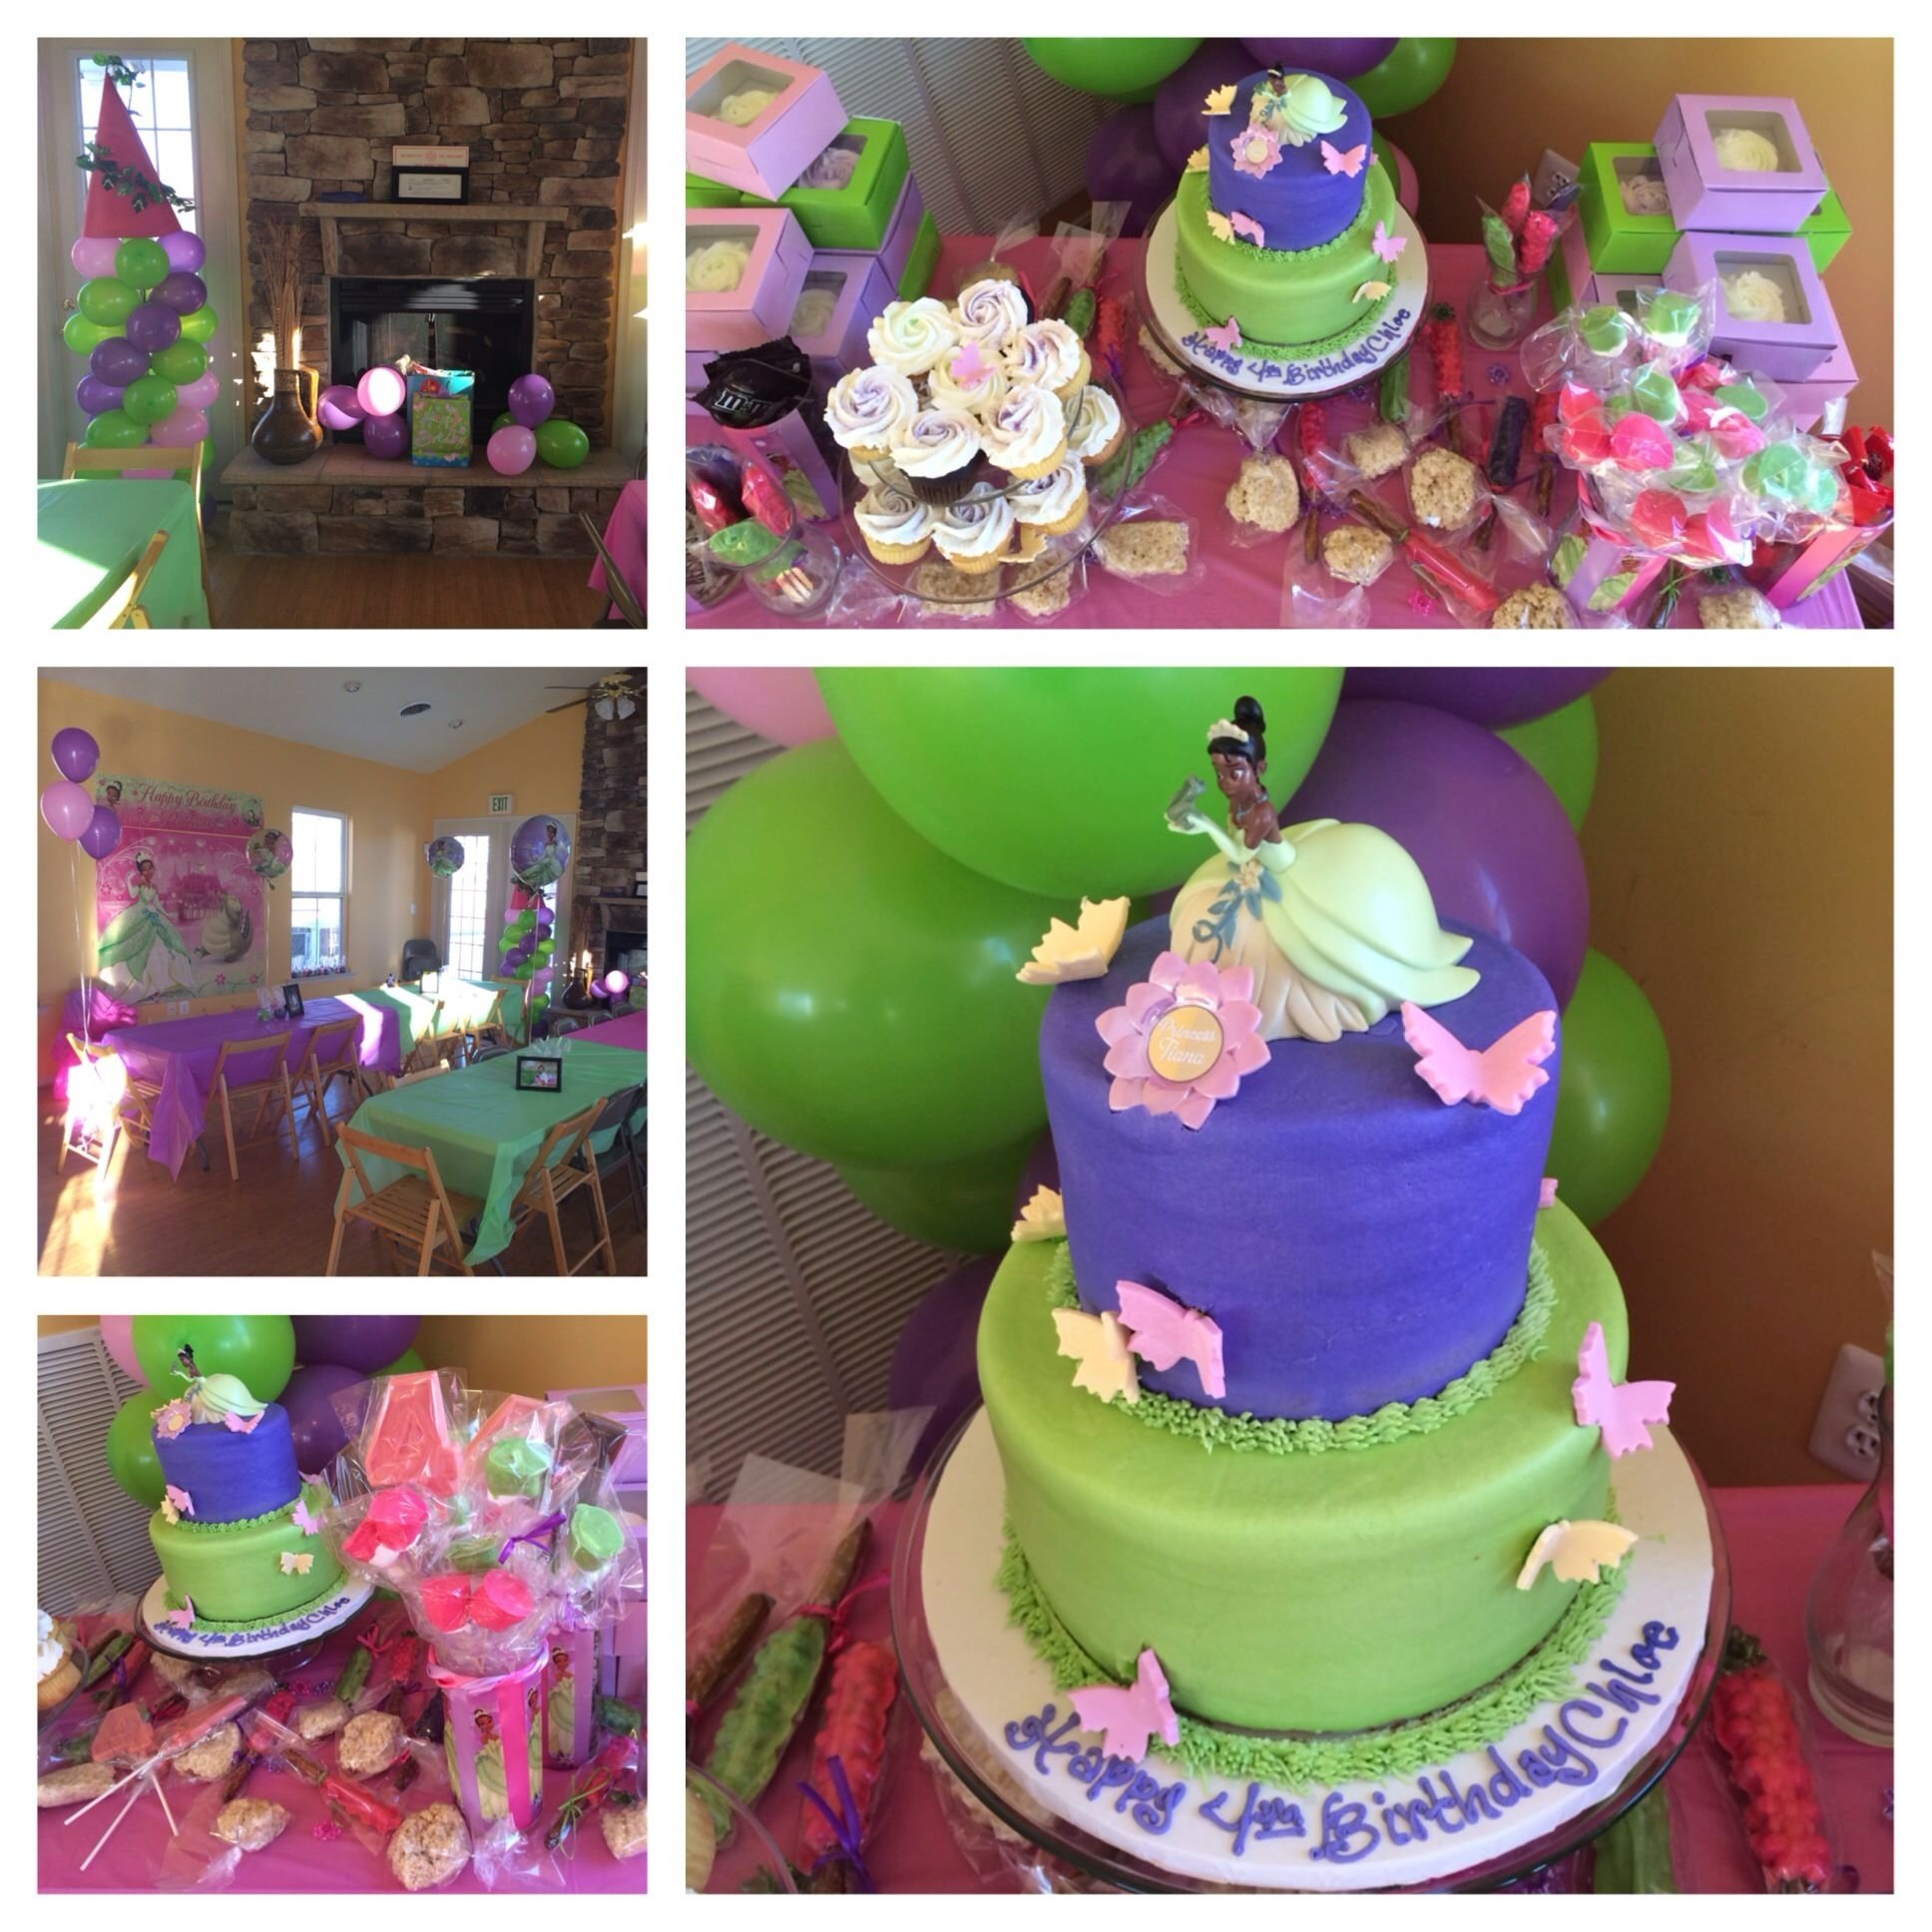 10 Lovable Princess And The Frog Birthday Ideas princess tiana birthday party collage our parties pinterest 1 2020